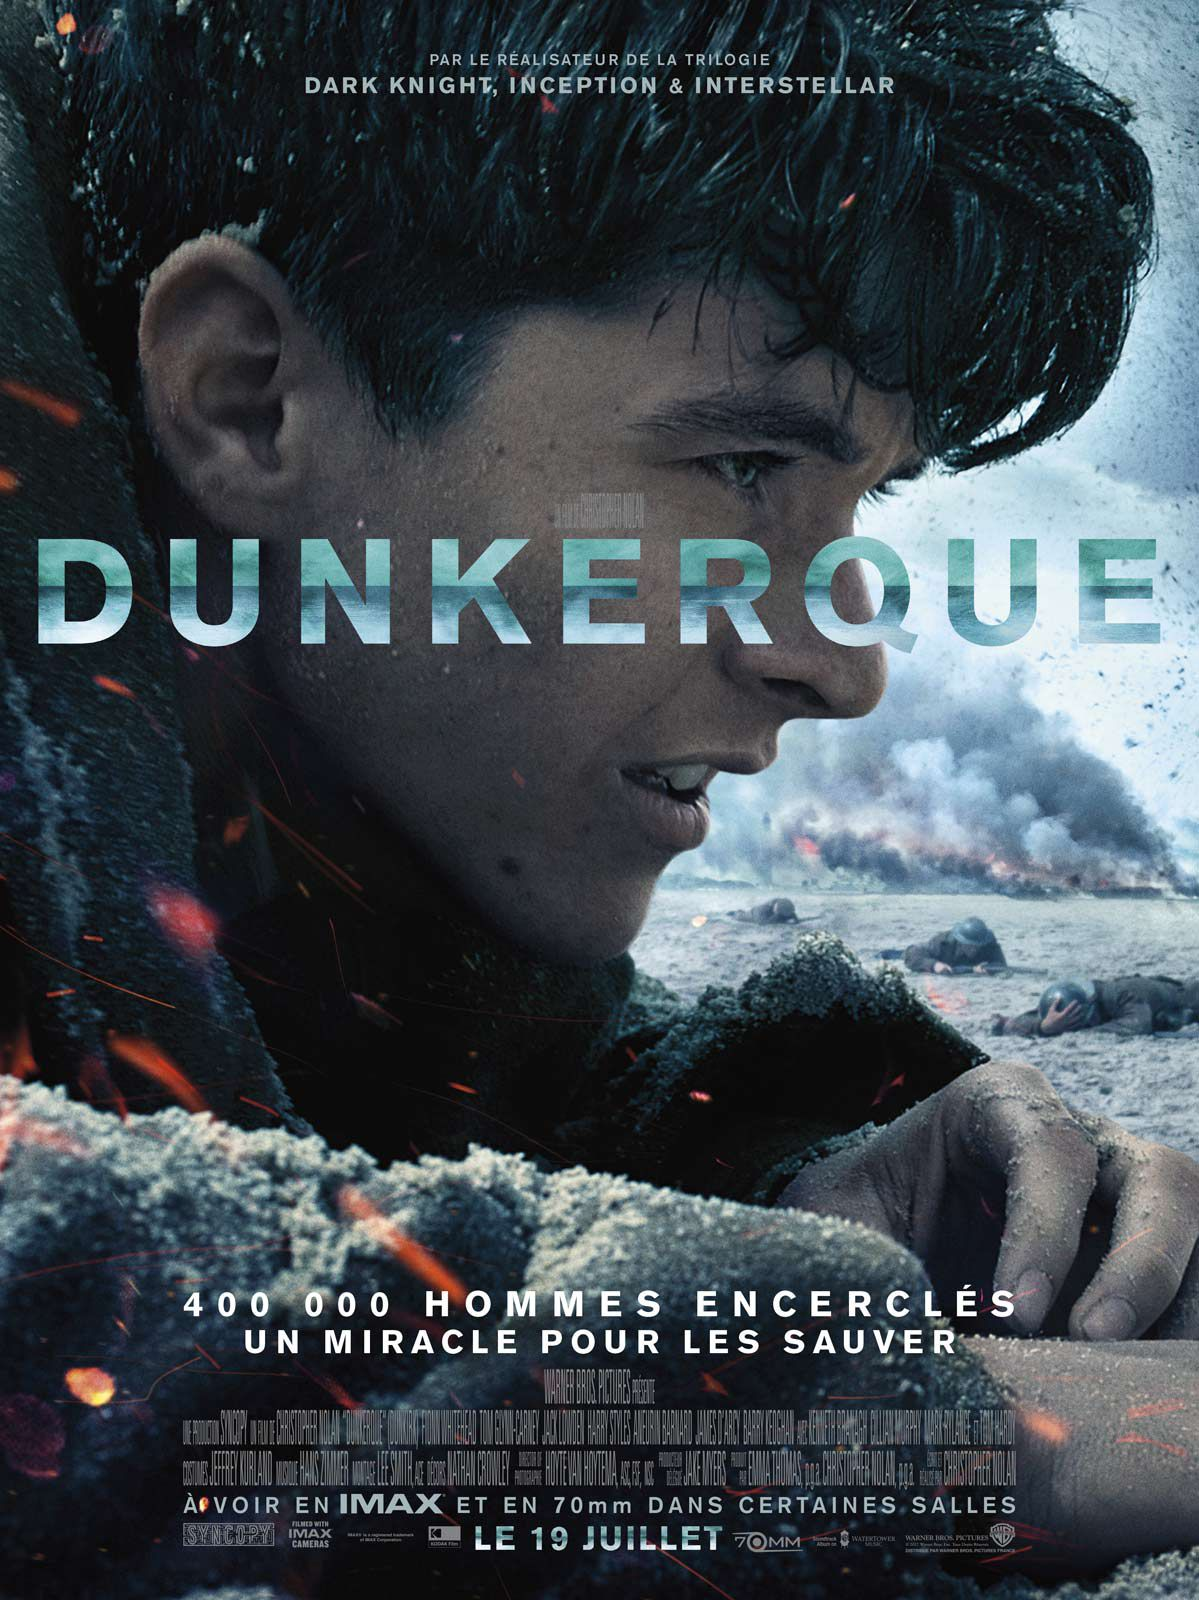 Dunkerque - Film (2017) streaming VF gratuit complet